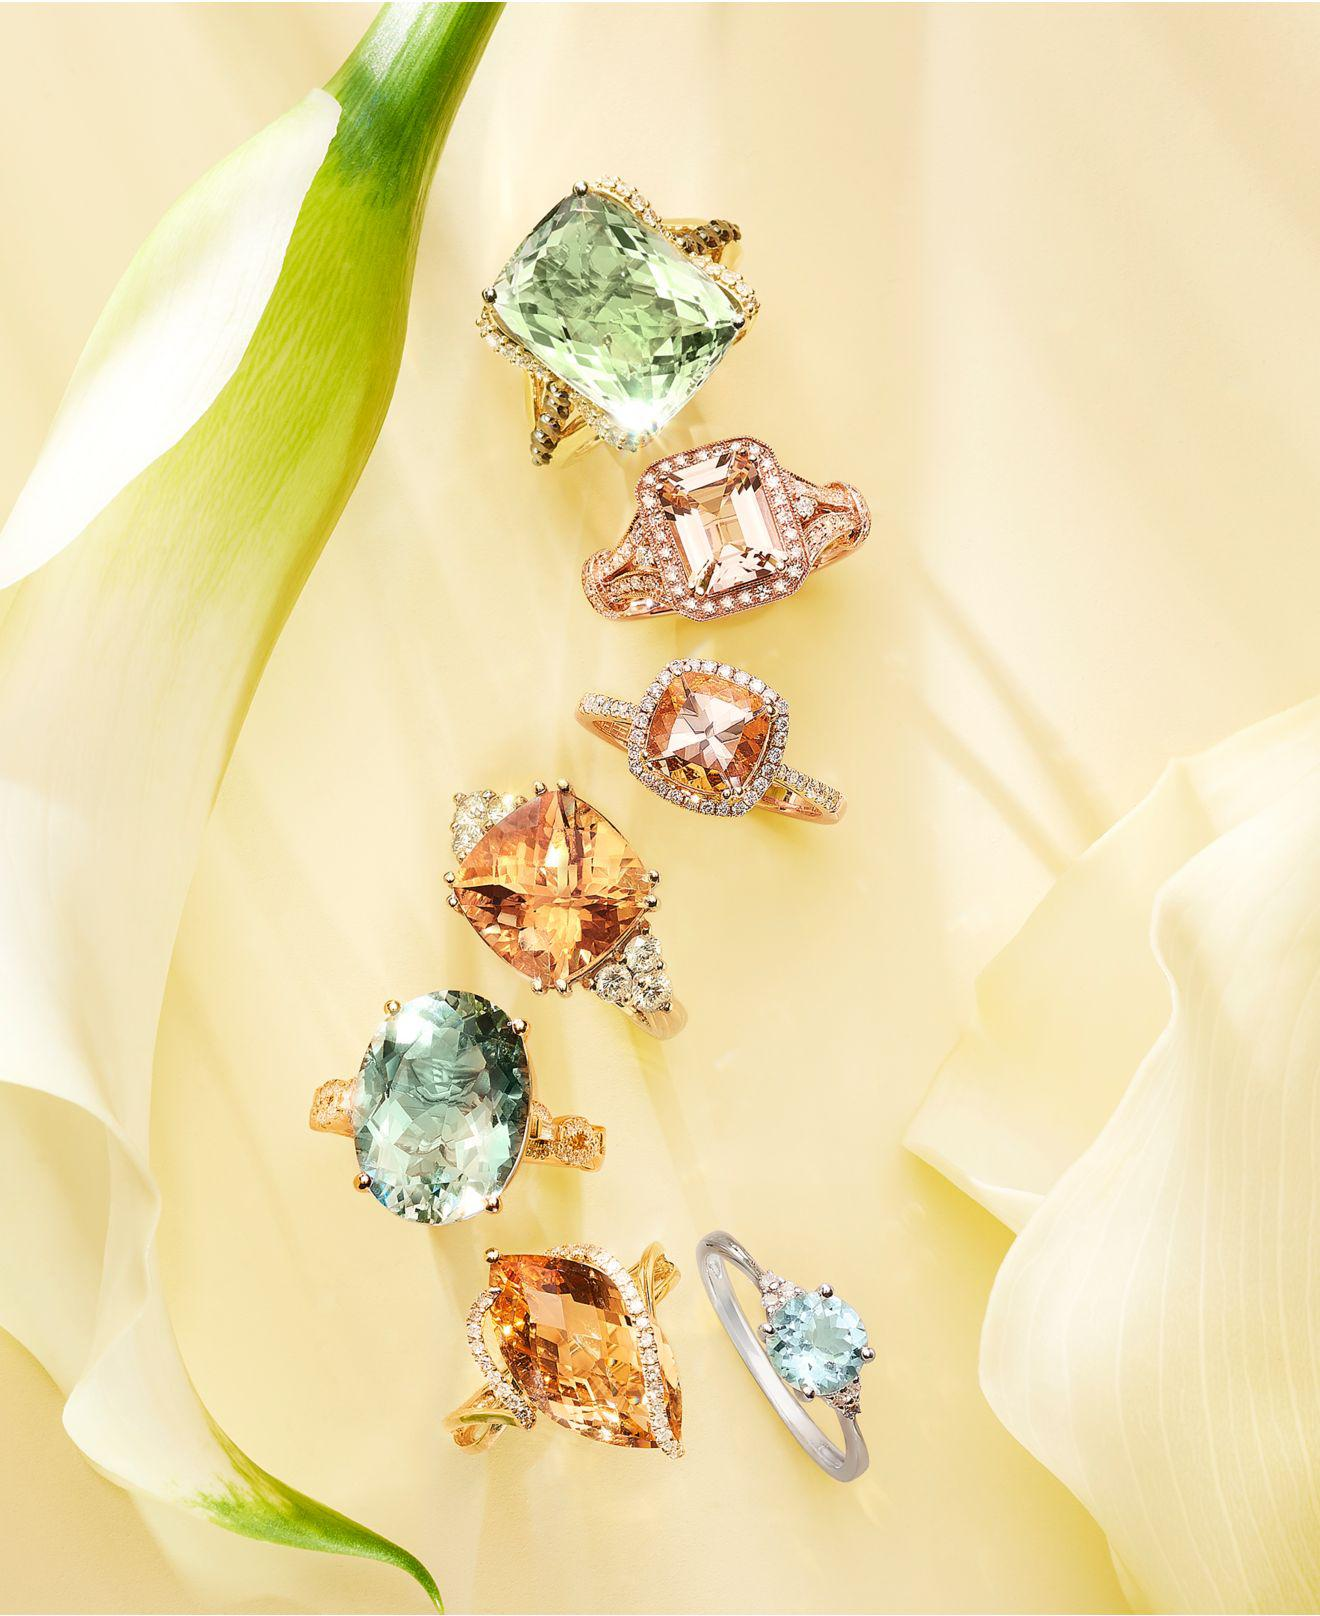 b7707b4fecc8 Lyst - Effy Collection Morganite (1-5 8 Ct. T.w.) And Diamond (1 4 Ct. T.w.)  Ring In 14k Rose Gold in Metallic